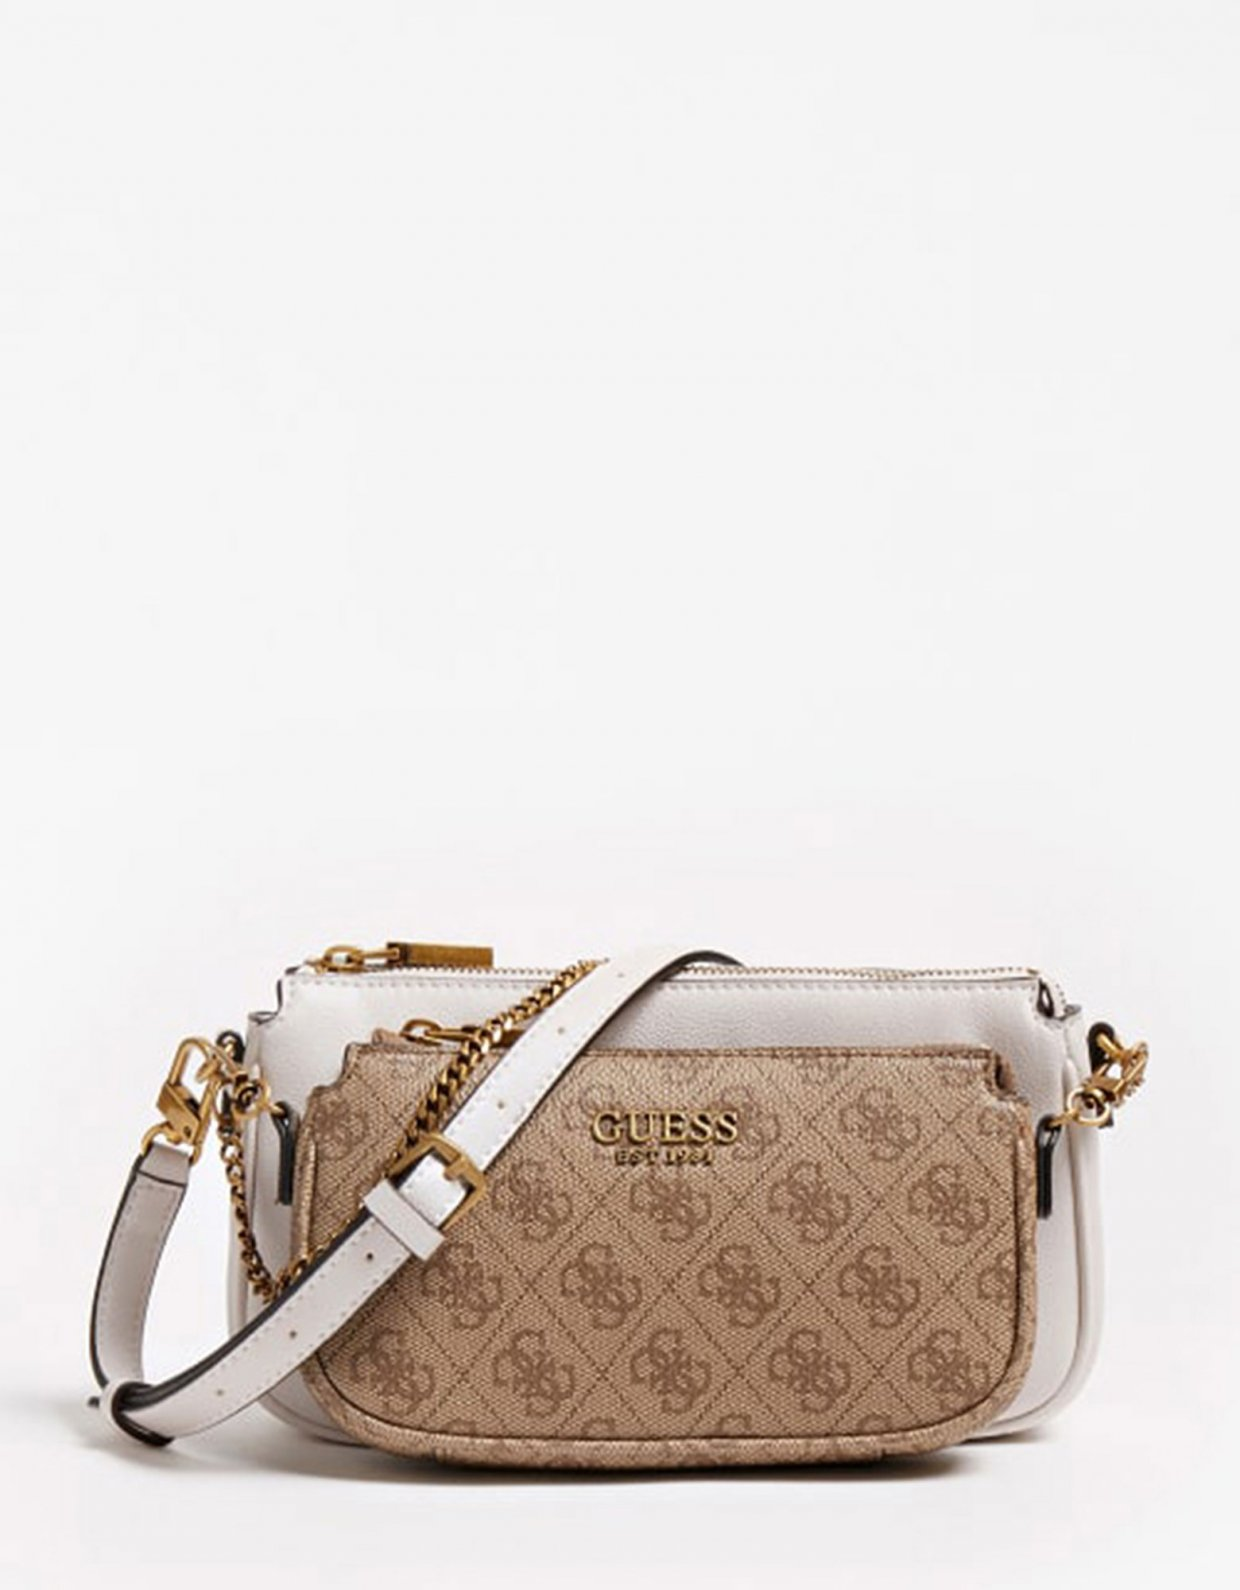 Guess Mika double pouch crossbody brown